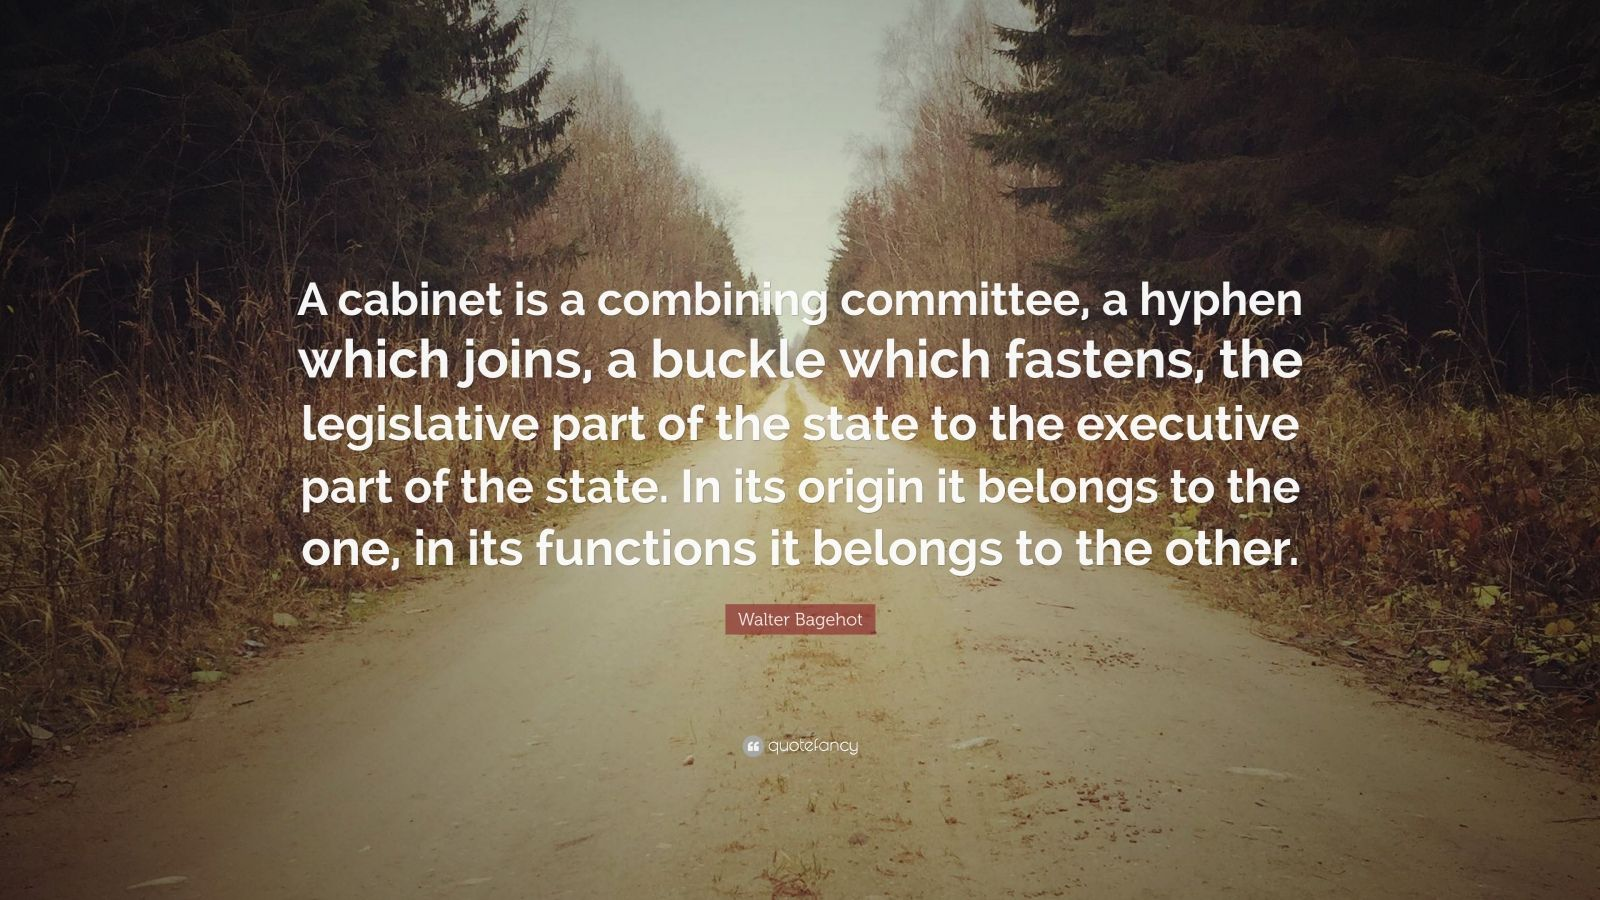 """Walter Bagehot Quote: """"A cabinet is a combining committee, a hyphen which joins, a buckle which fastens, the legislative part of the state to the executive part of the state. In its origin it belongs to the one, in its functions it belongs to the other."""""""